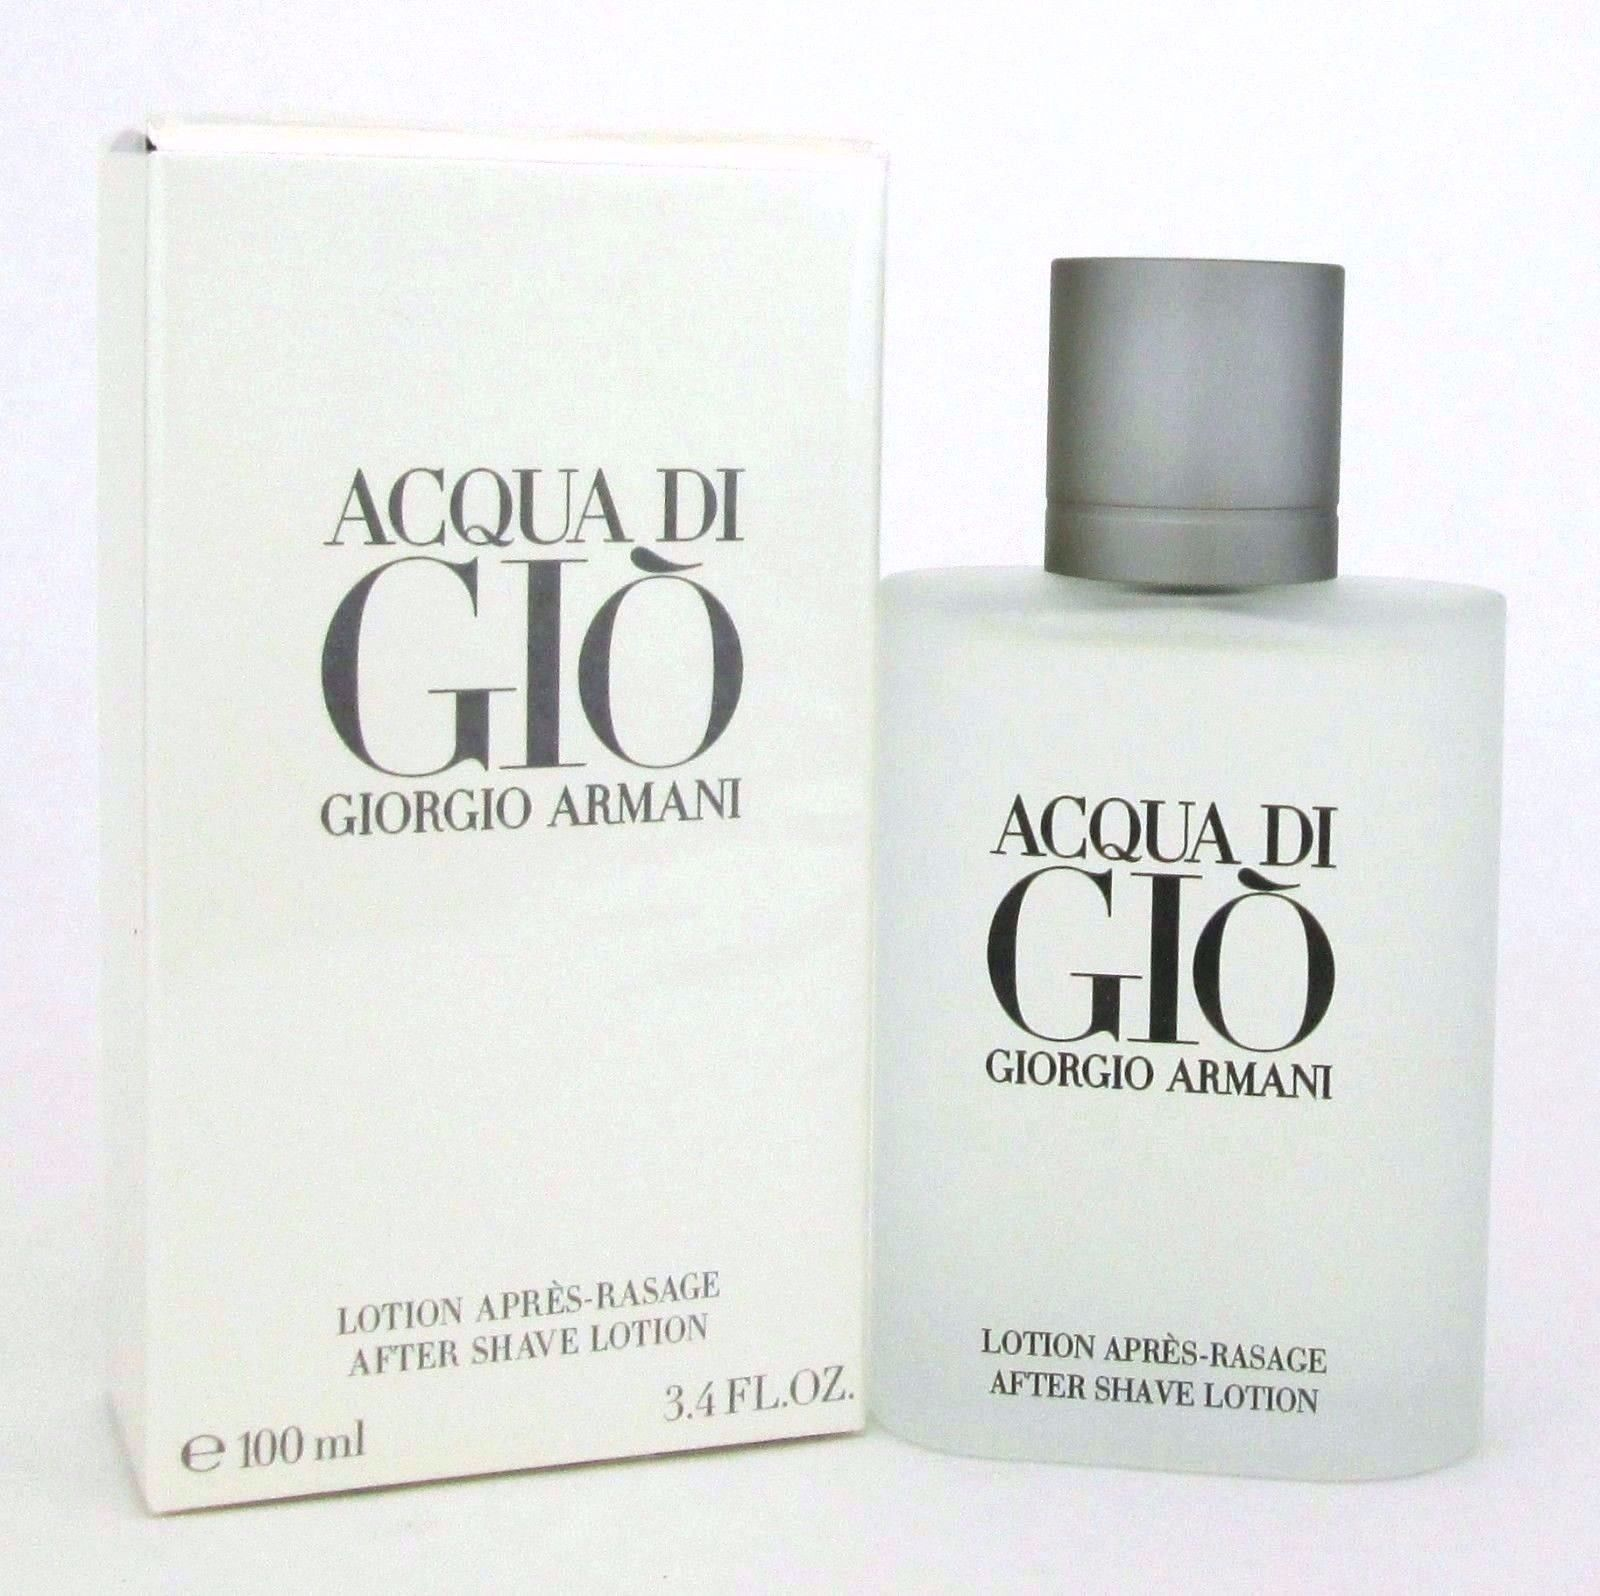 40fdd0f40f69 S l1600. S l1600. Previous. Acqua Di Gio By Giorgio Armani After Shave  Lotion Splash 3.4 Oz. Men